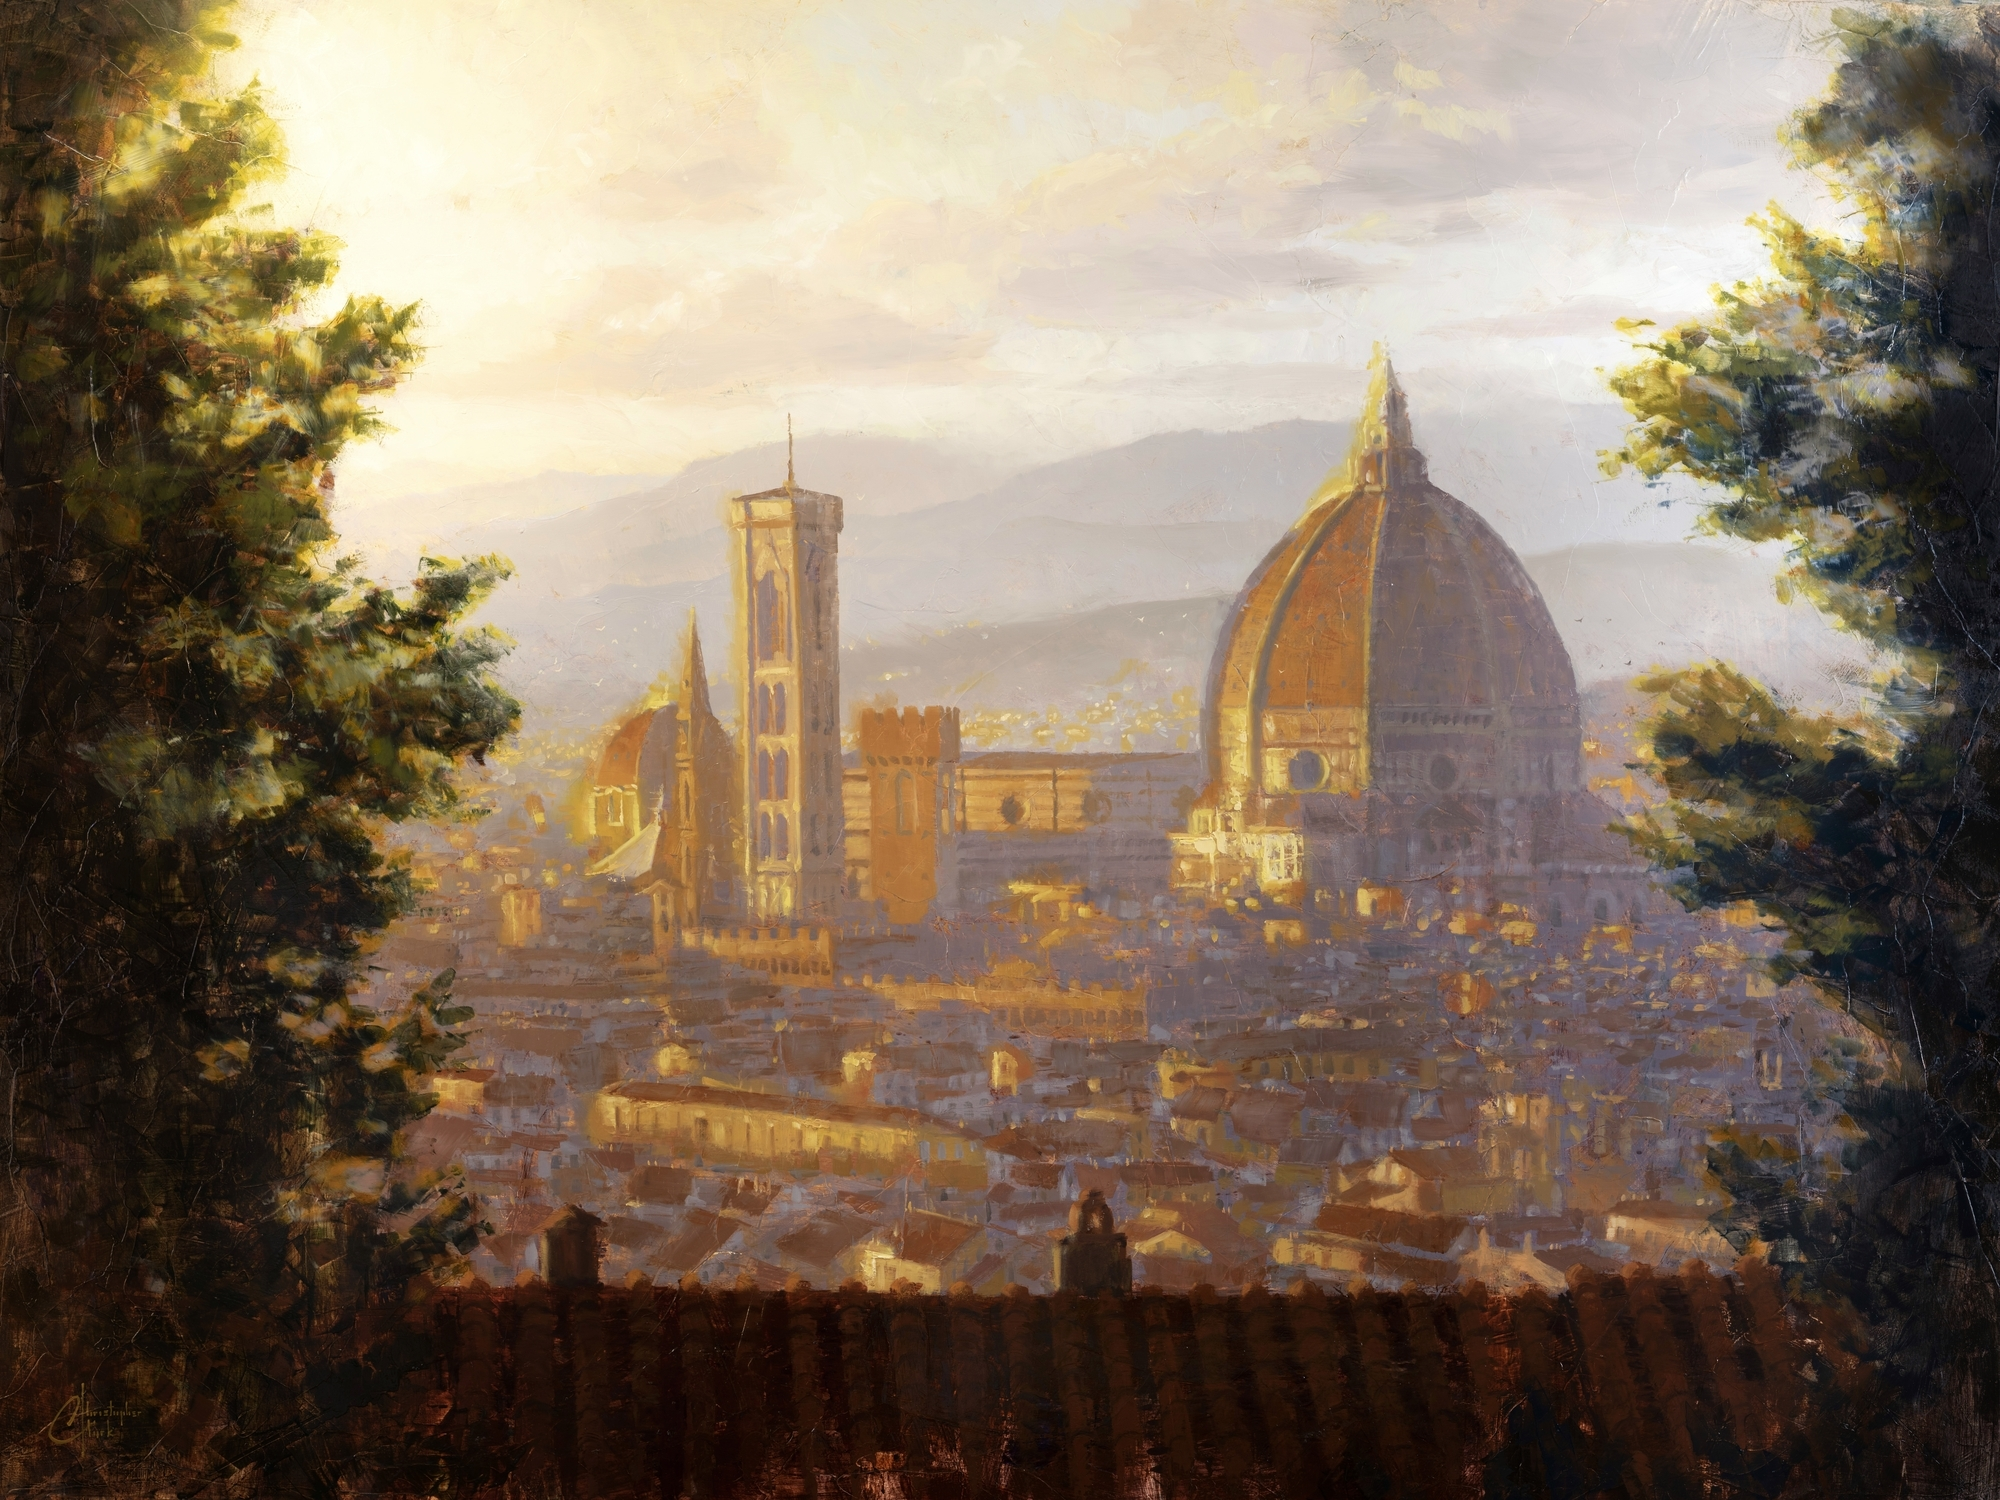 Florence, Italy - Duomo from a Distance by Christopher Clark